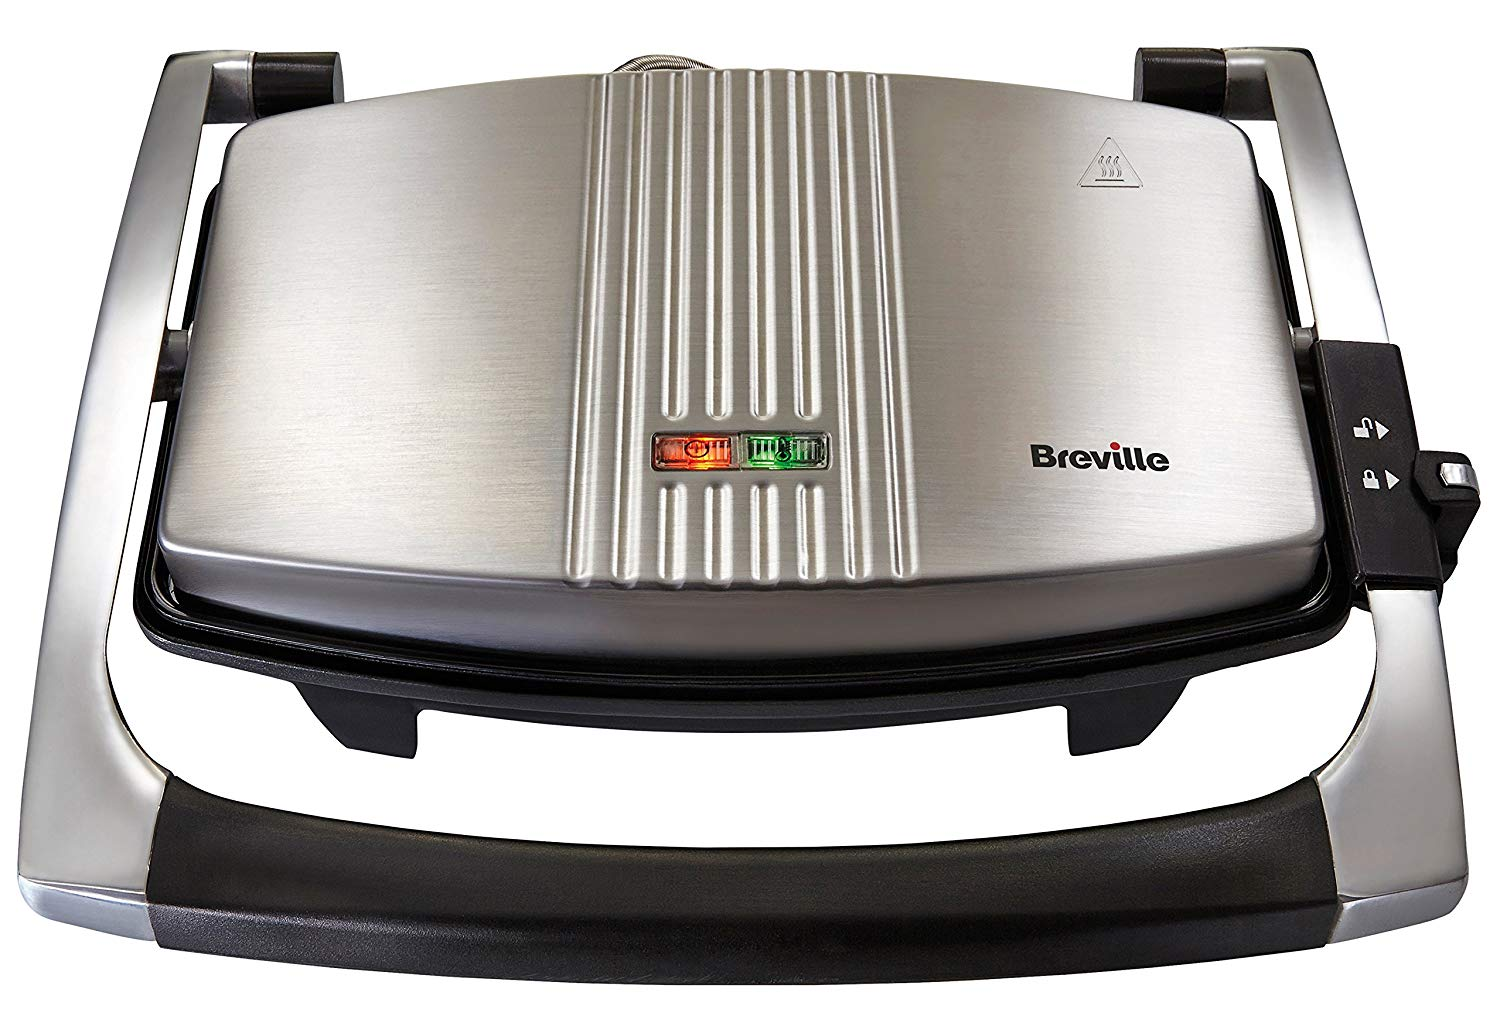 Breville Sandwich Press, Stainless Steel